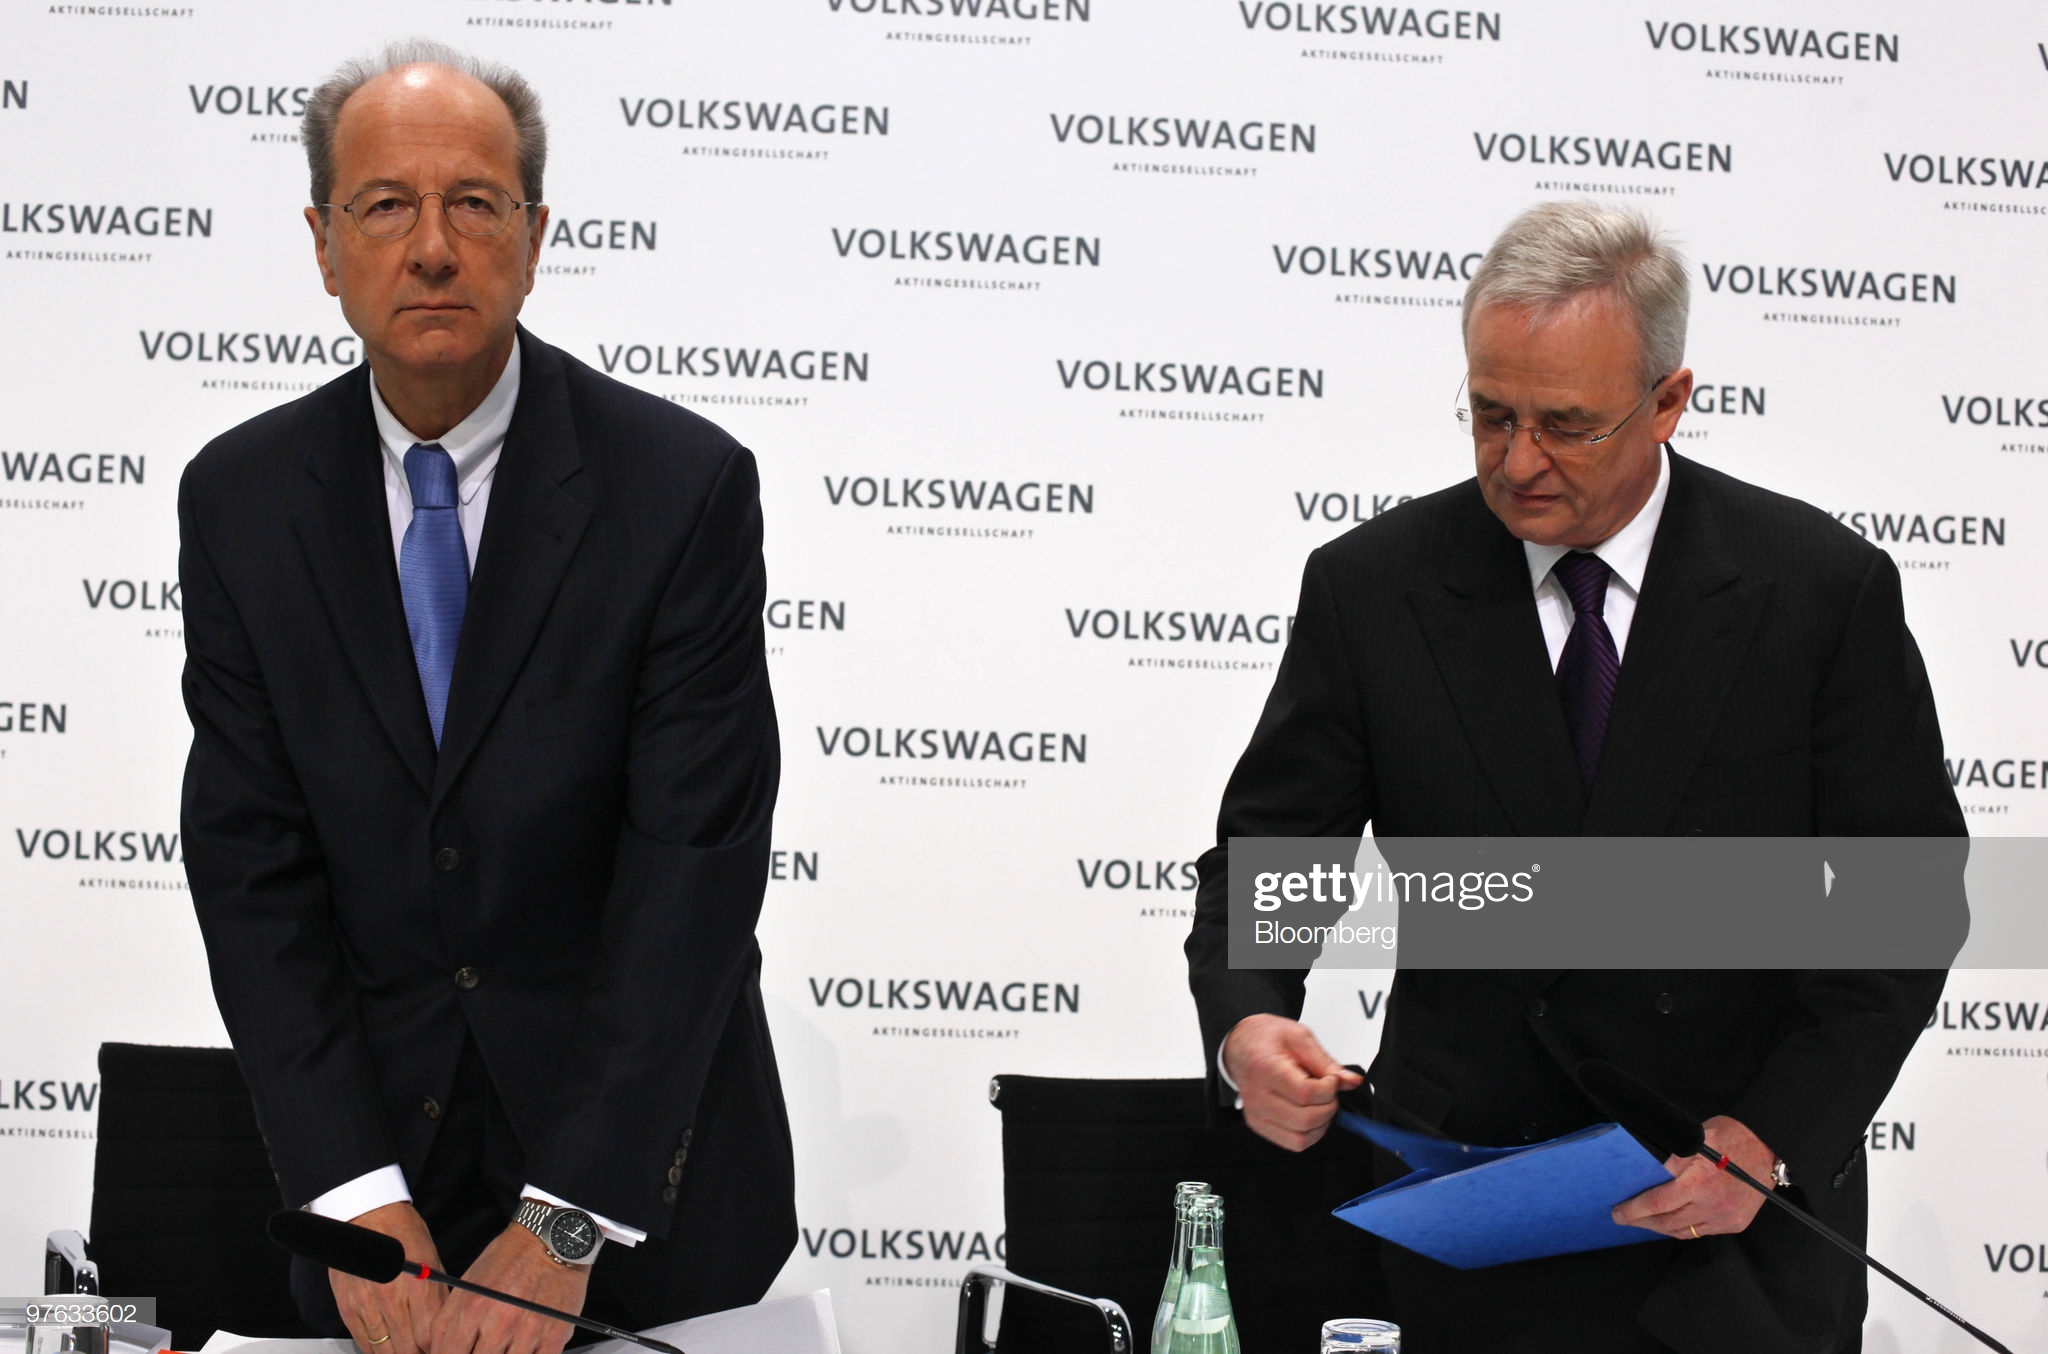 Spotted - Hans Dieter Pötsch, Chairman of Porsche SE, With Omega Speedmaster Mark II